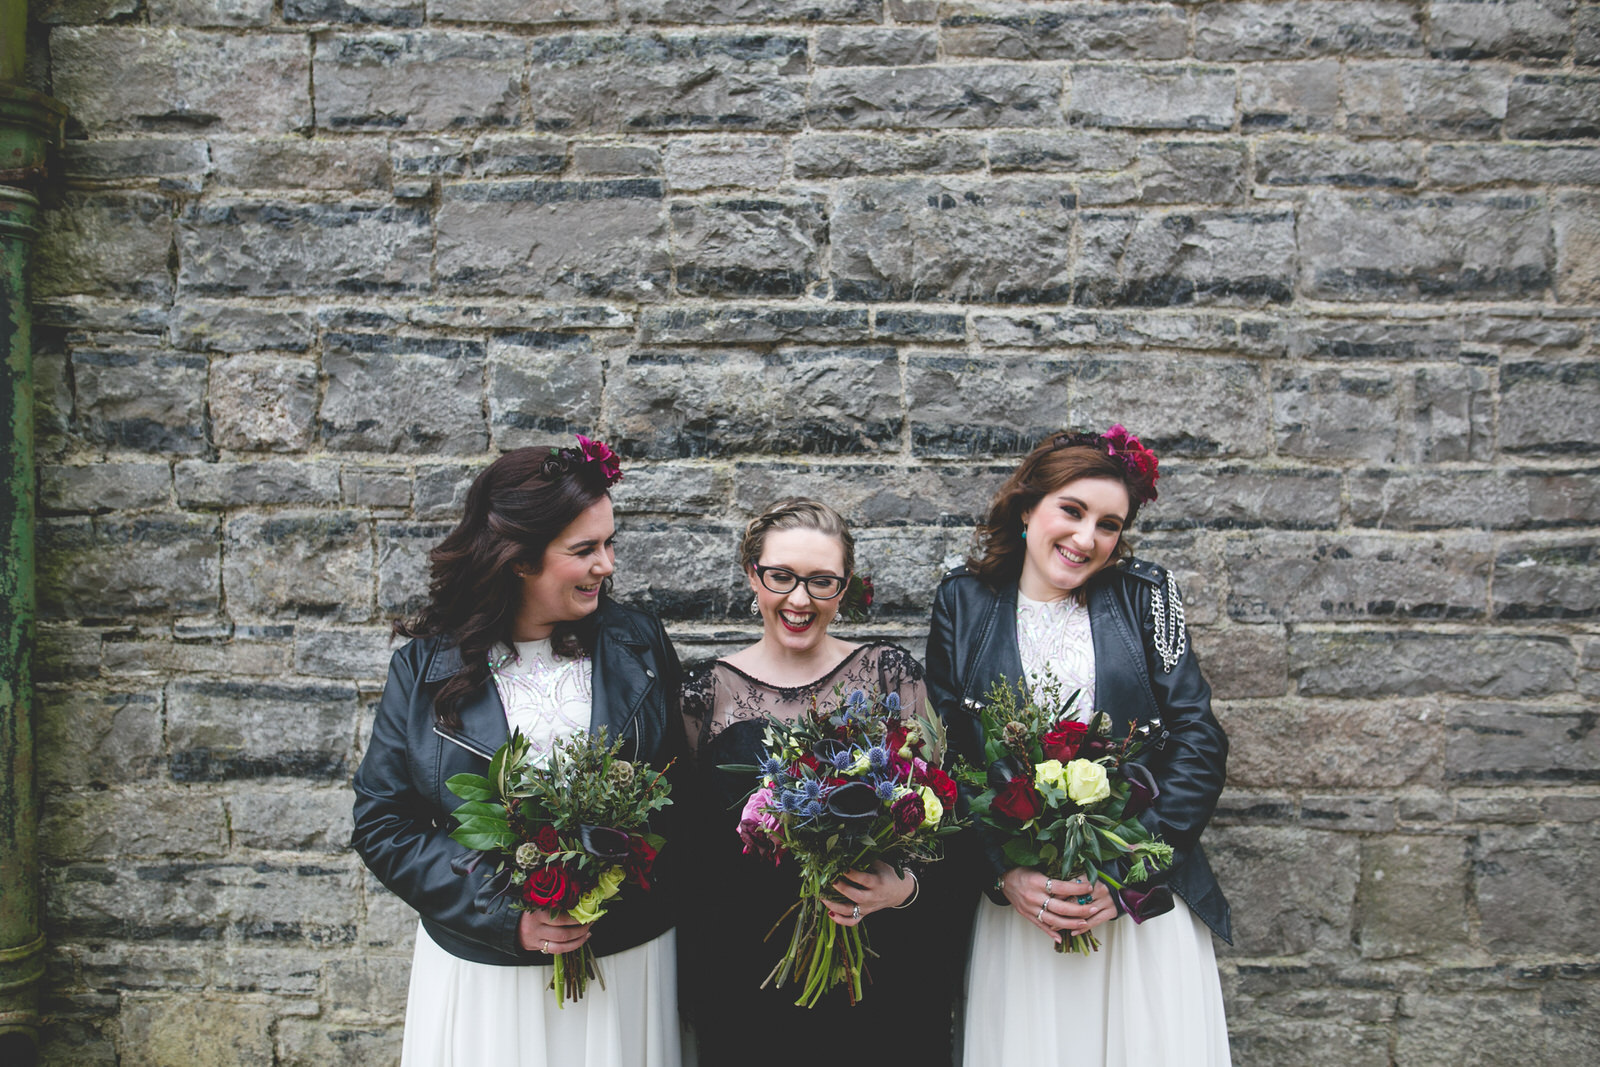 Bride wearing a black wedding dress with Bridesmaids in white and leather jackets